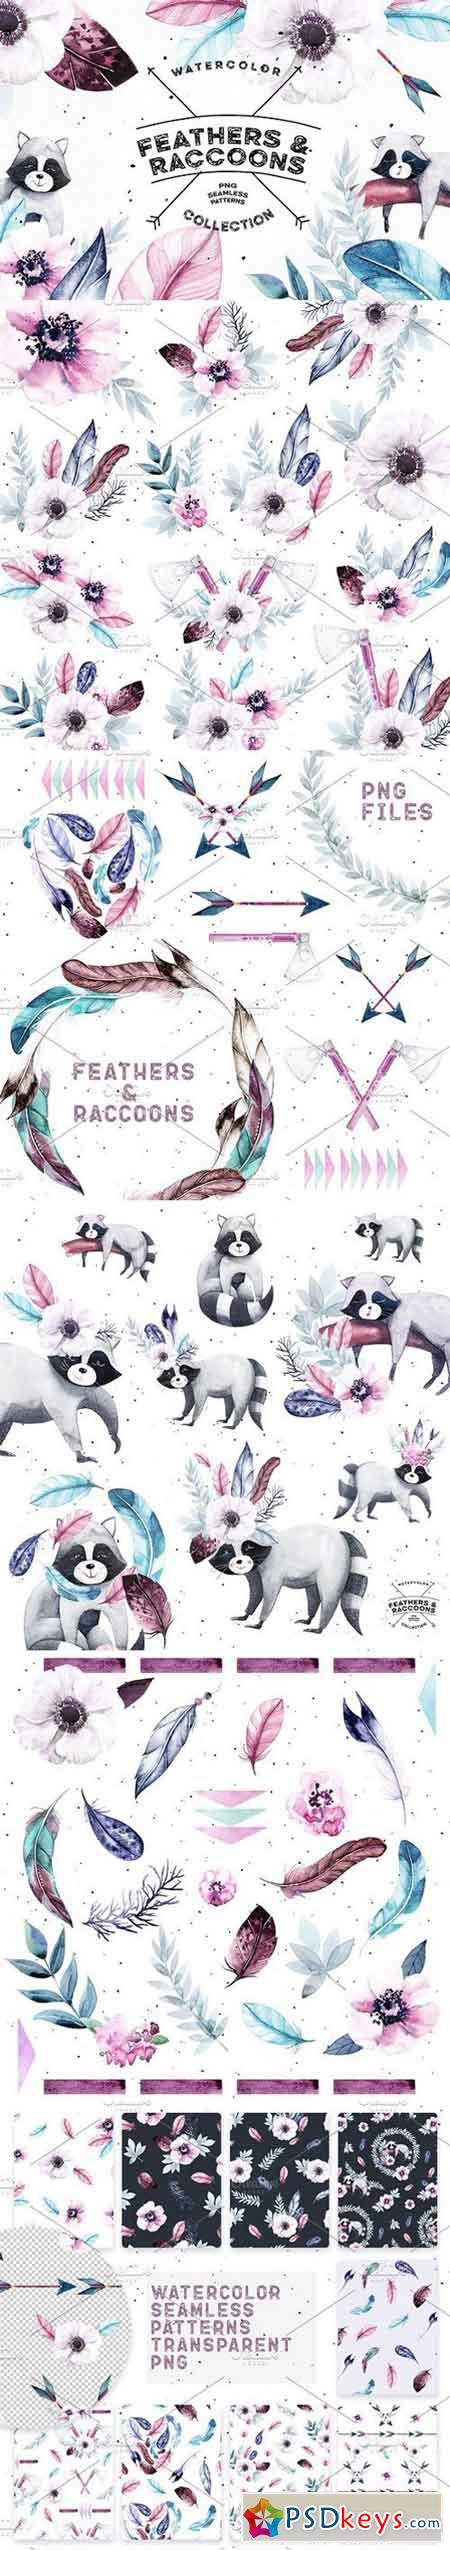 Watercolor Feathers & Raccoons 1329017